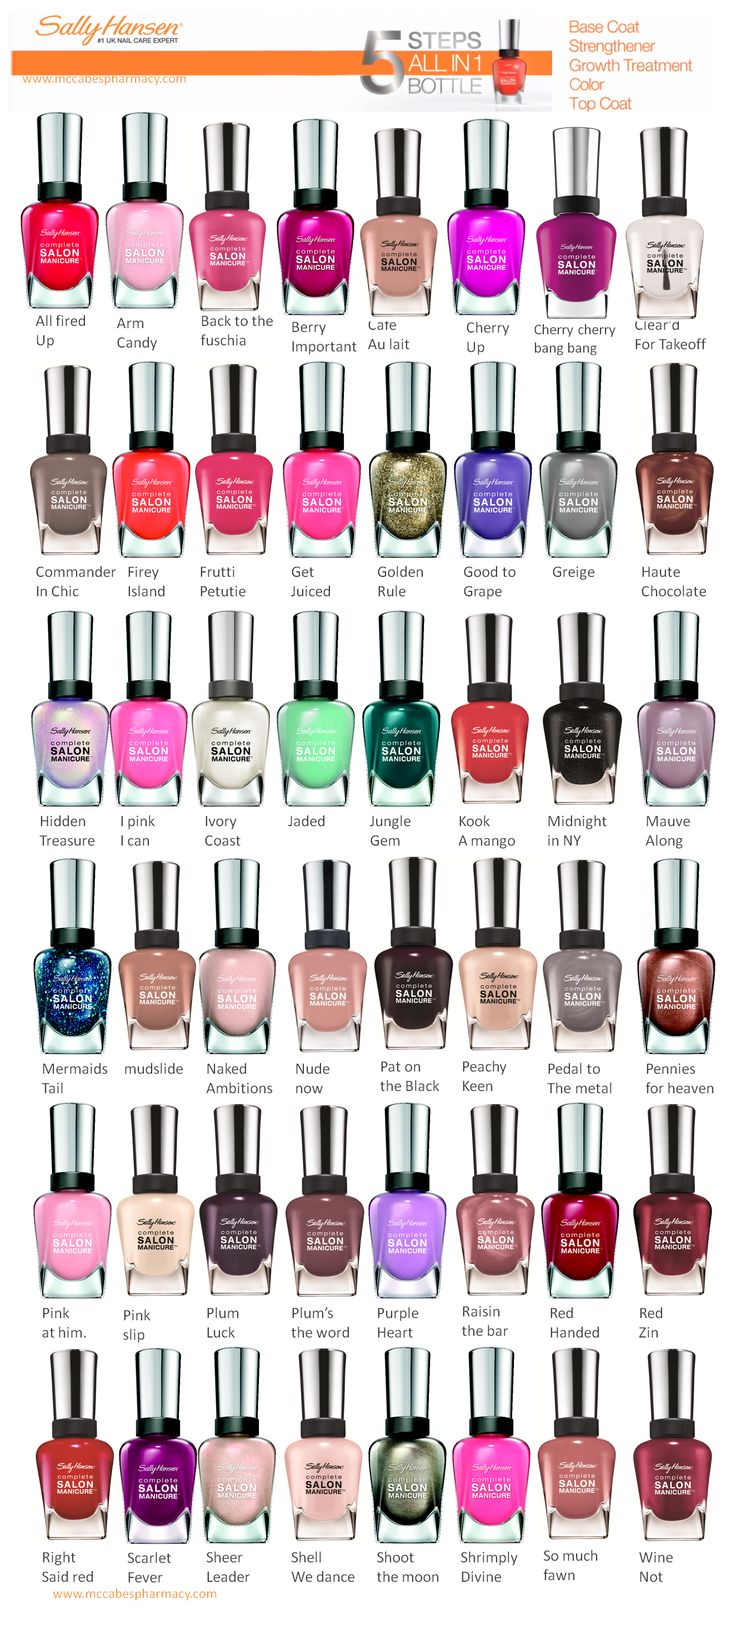 Sally hansen nails - complete Salon manicure polish.